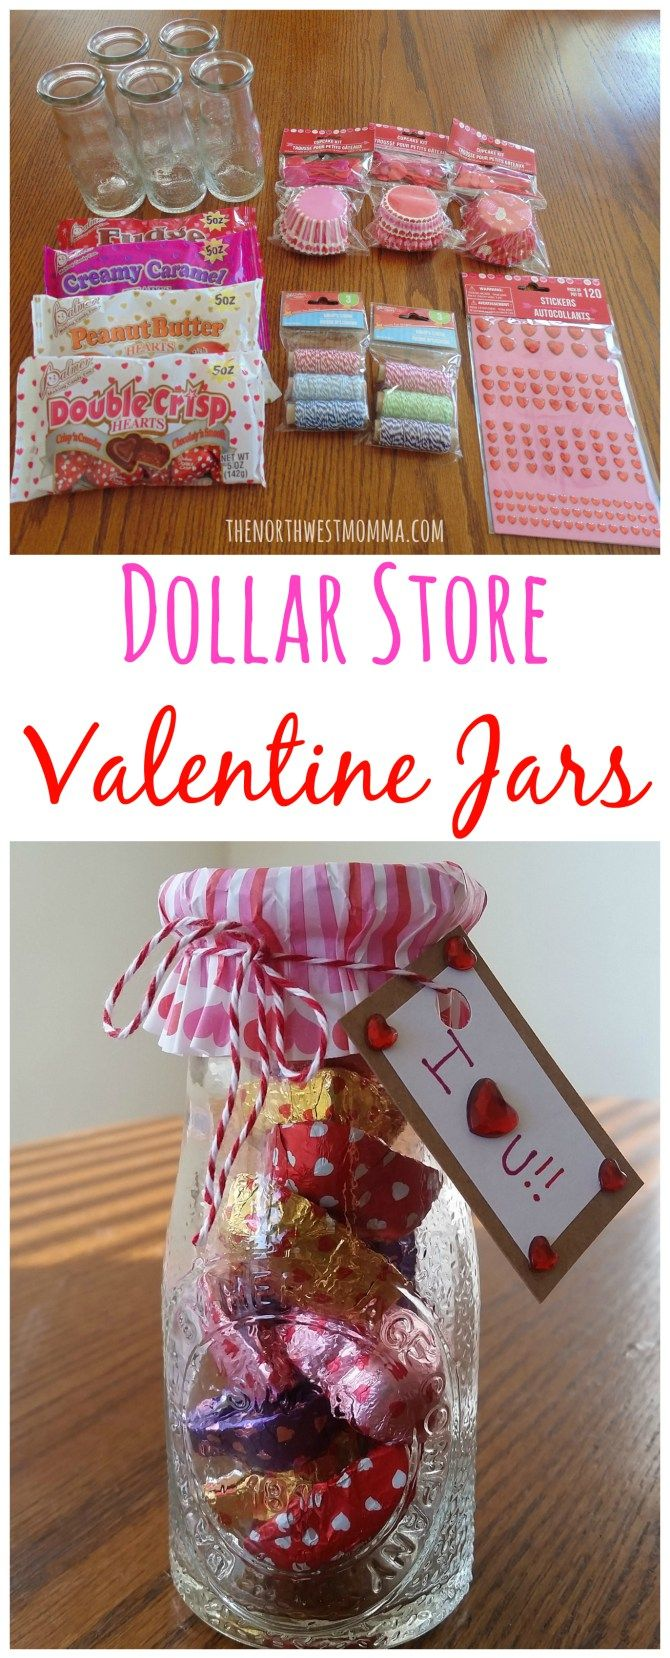 The 25 best valentine ideas ideas on pinterest valentines day dollar store valentine jars negle Images